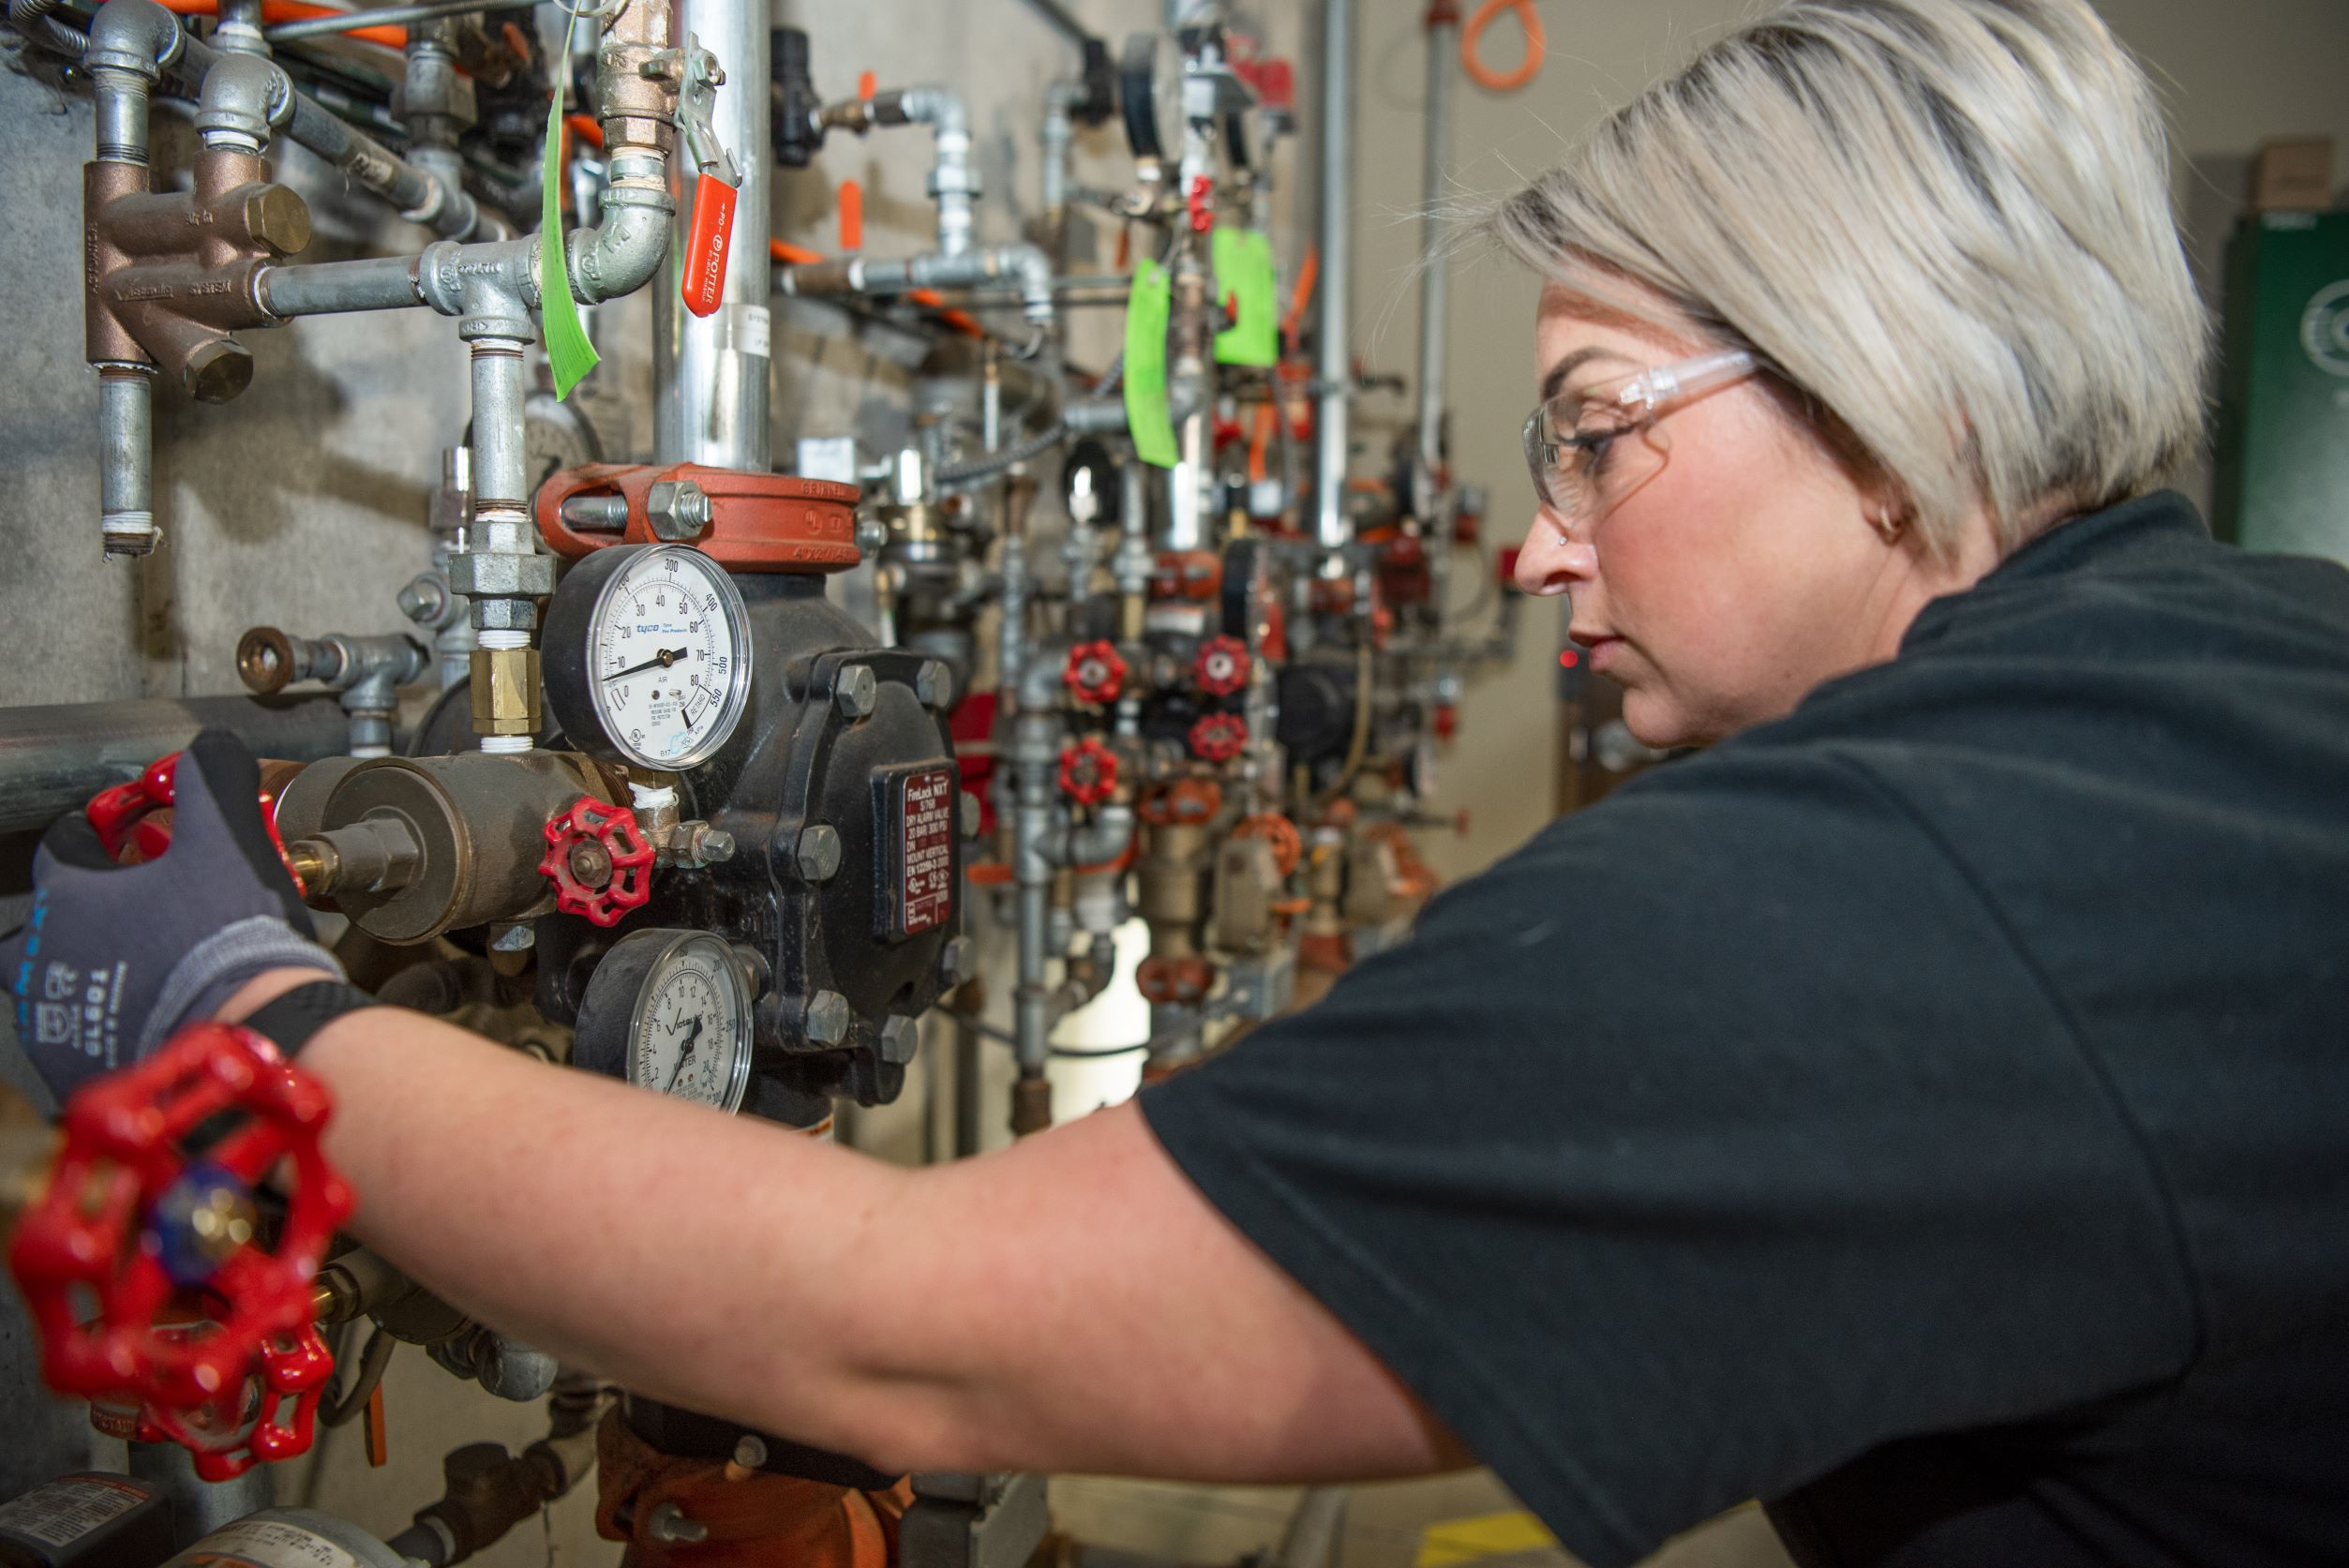 Technicians do a variety of testing and inspecting systems